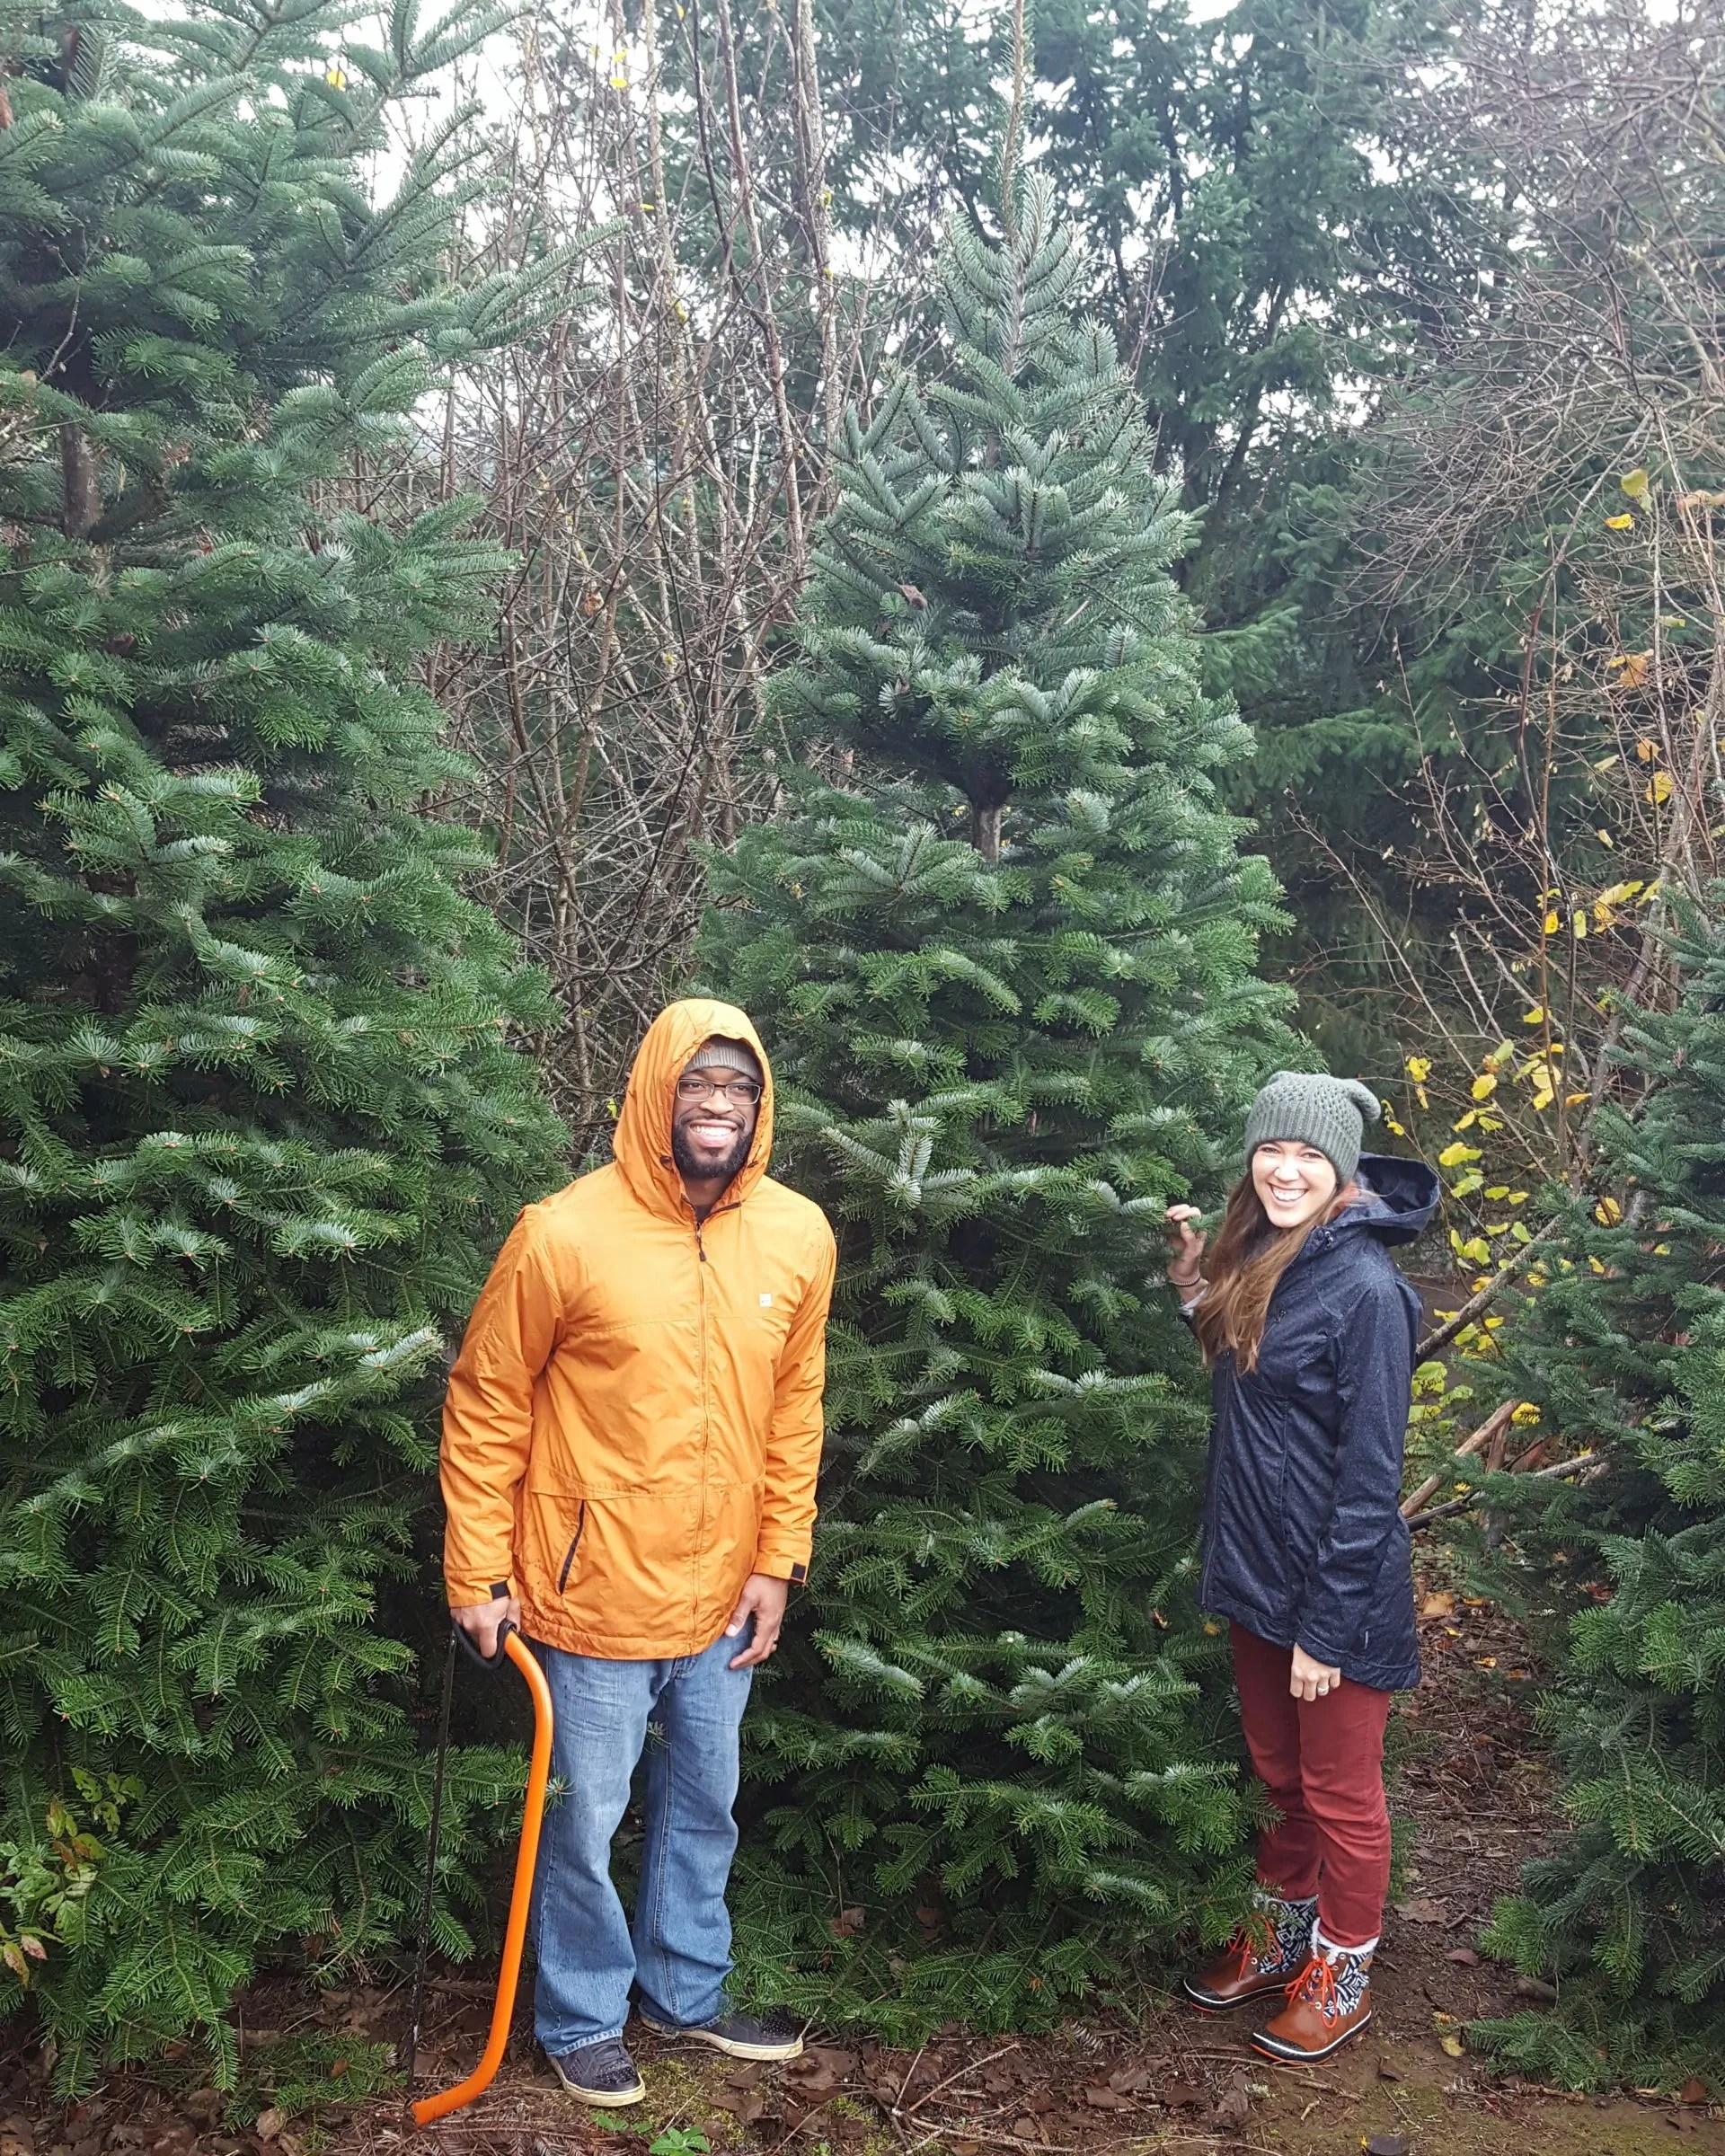 Kevin and Ashley found a tree